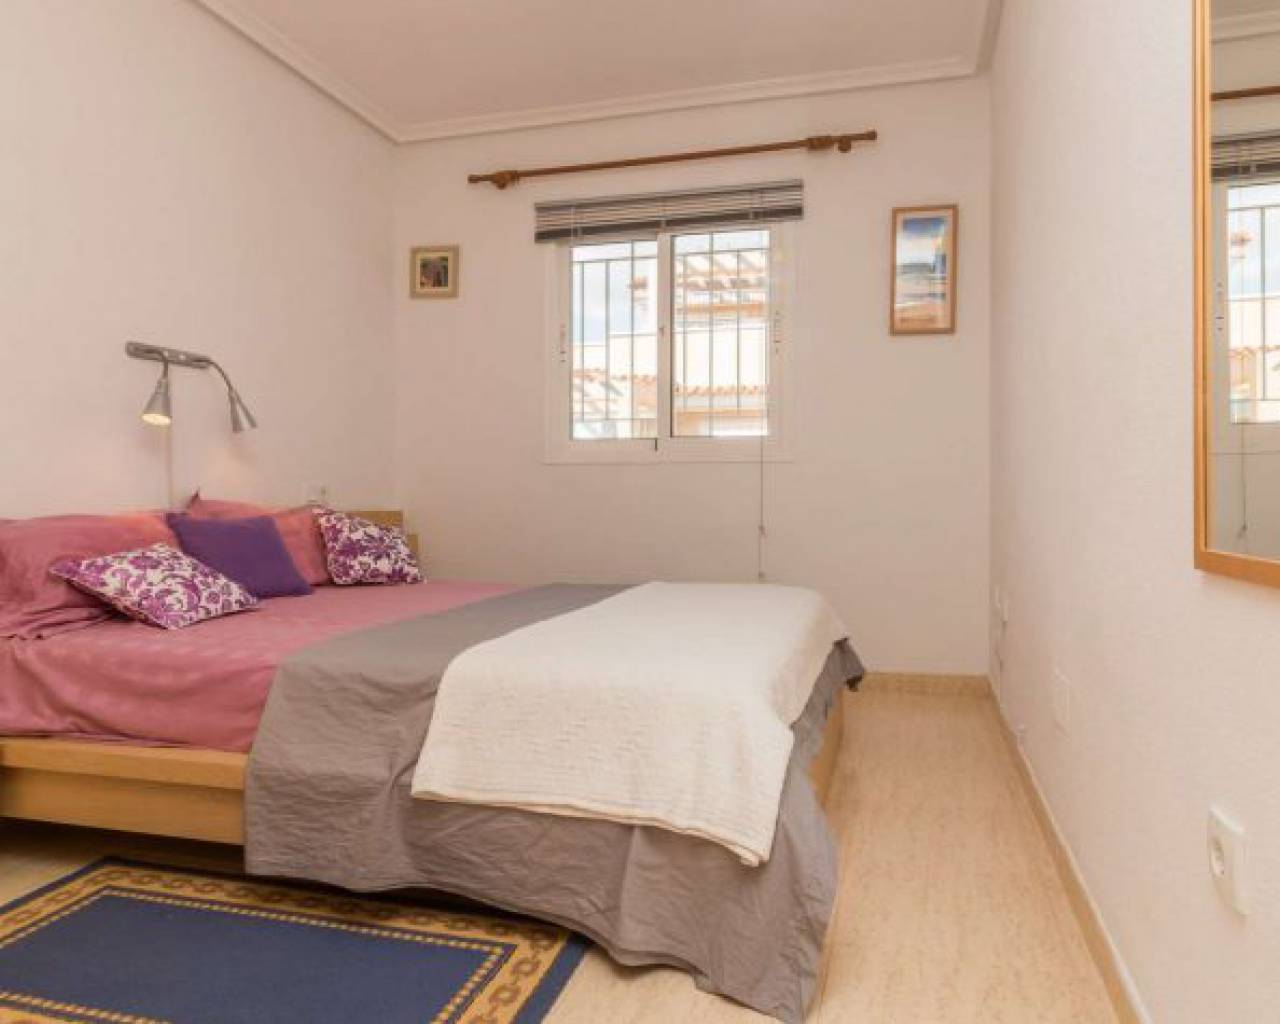 Sale - Apartment - Orihuela-Costa - La Zenia